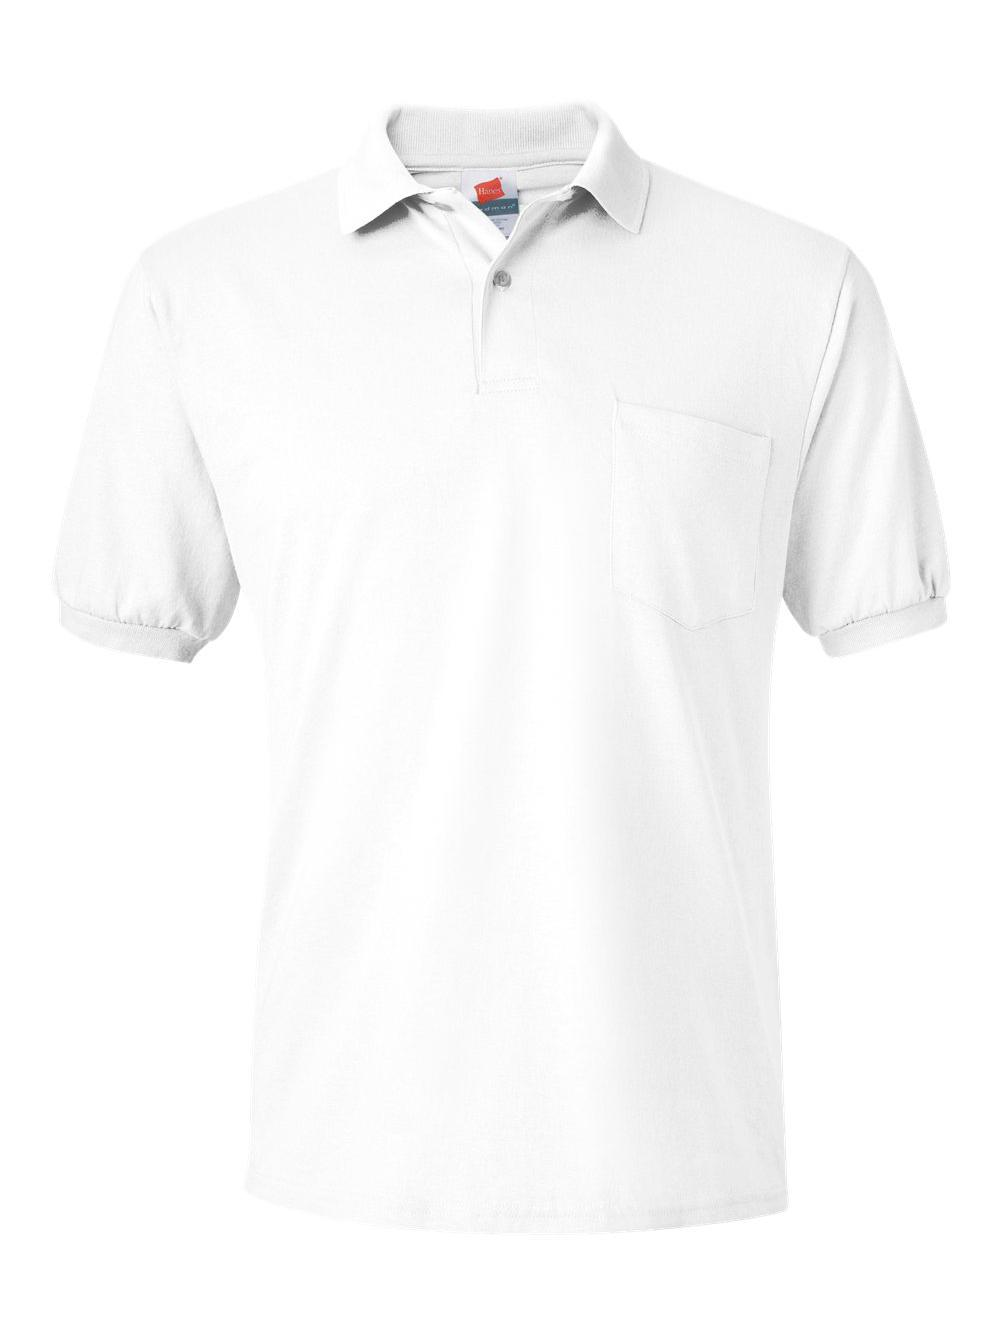 Hanes Comfortblend Ecosmart Jersey Mens Polo With Pocket Style 504